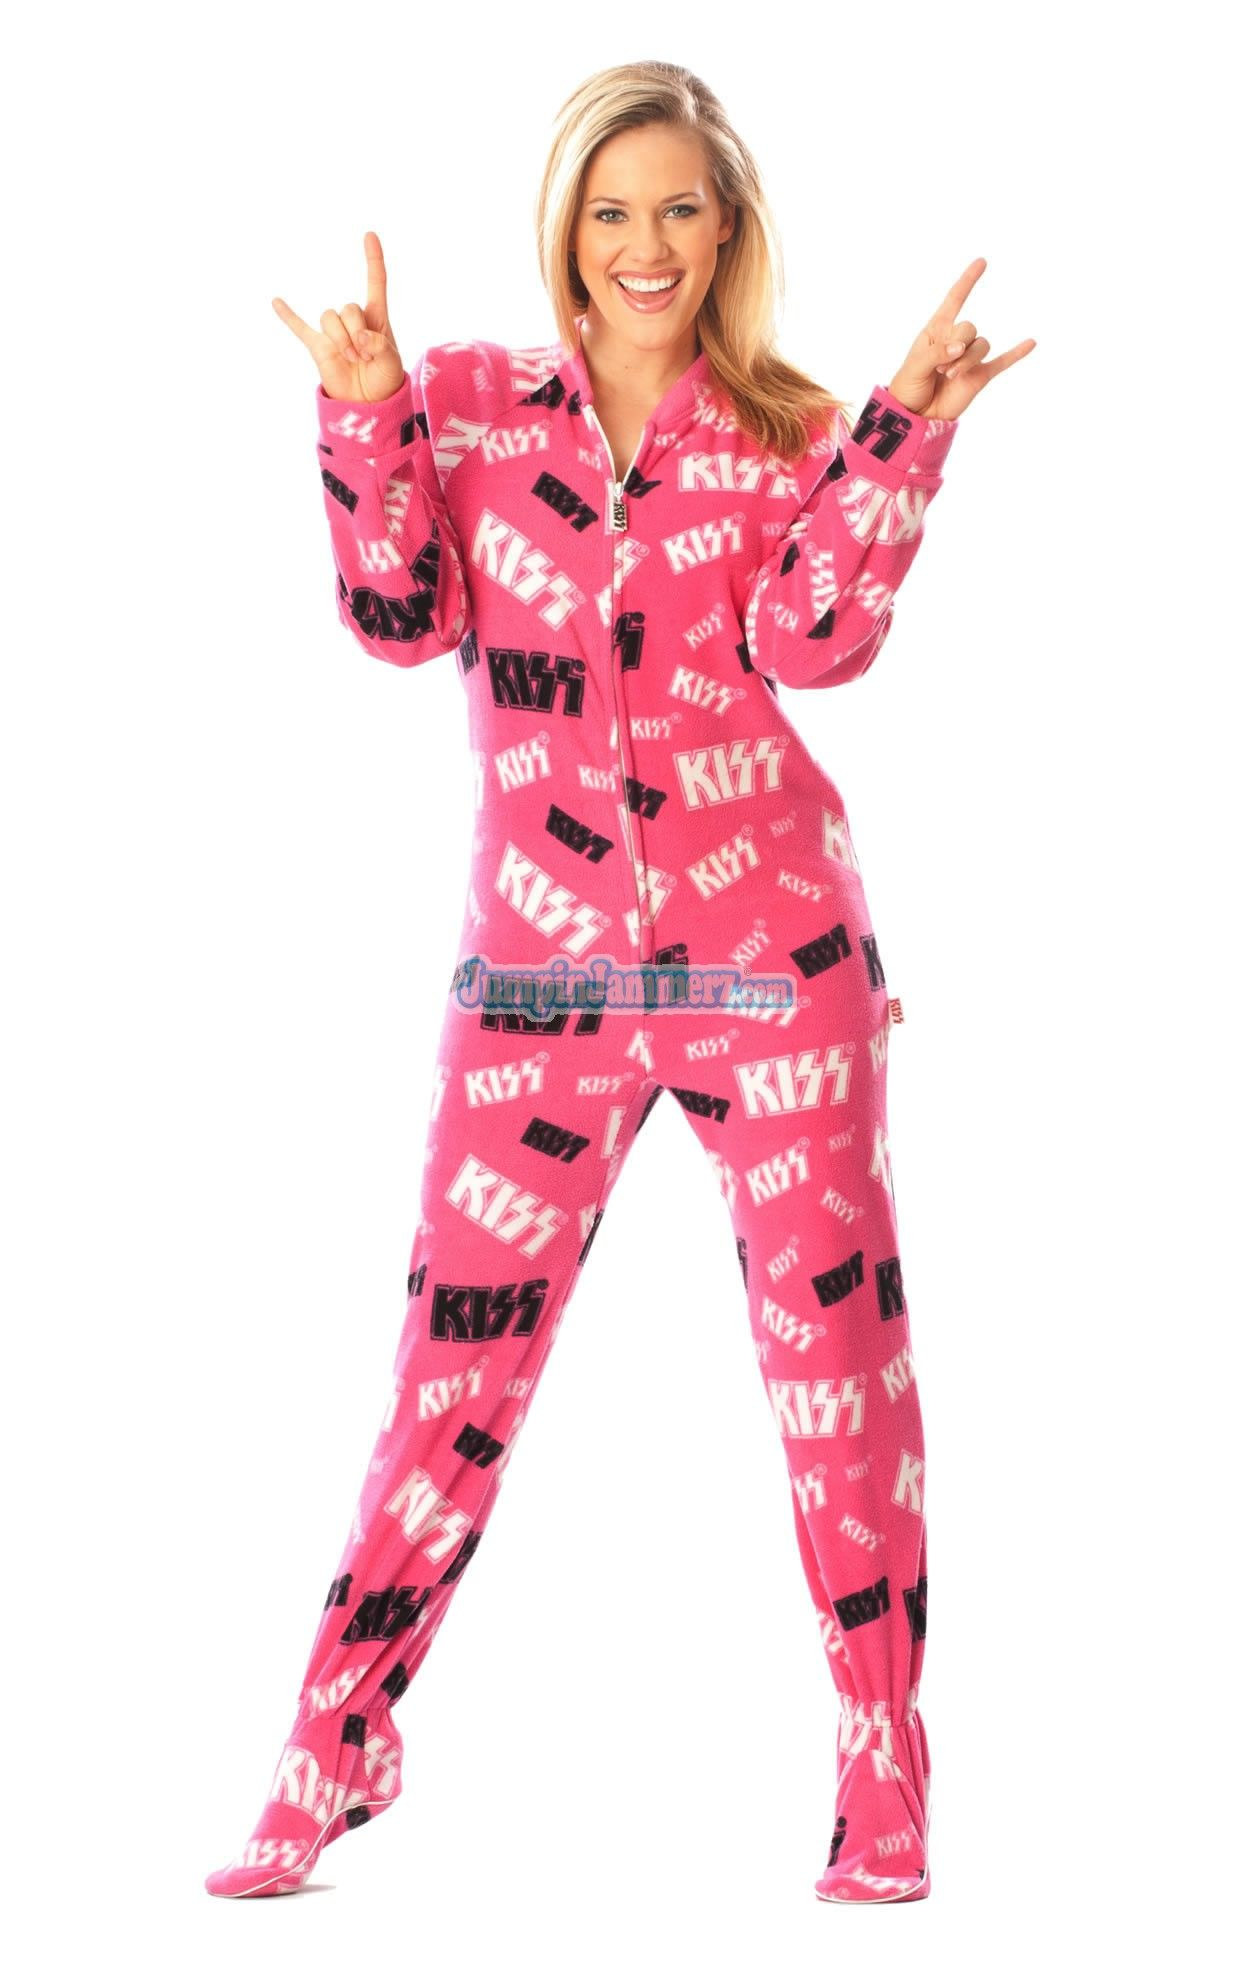 Look below through our huge selection of footed pajamas for men and when you find a pair you like, click on them and you'll find a size chart below the drop down menu on the product page. No matter which brand you buy or which material, you'll love sleeping or just relaxing at home in your new favorite Men's Footed Pajamas.